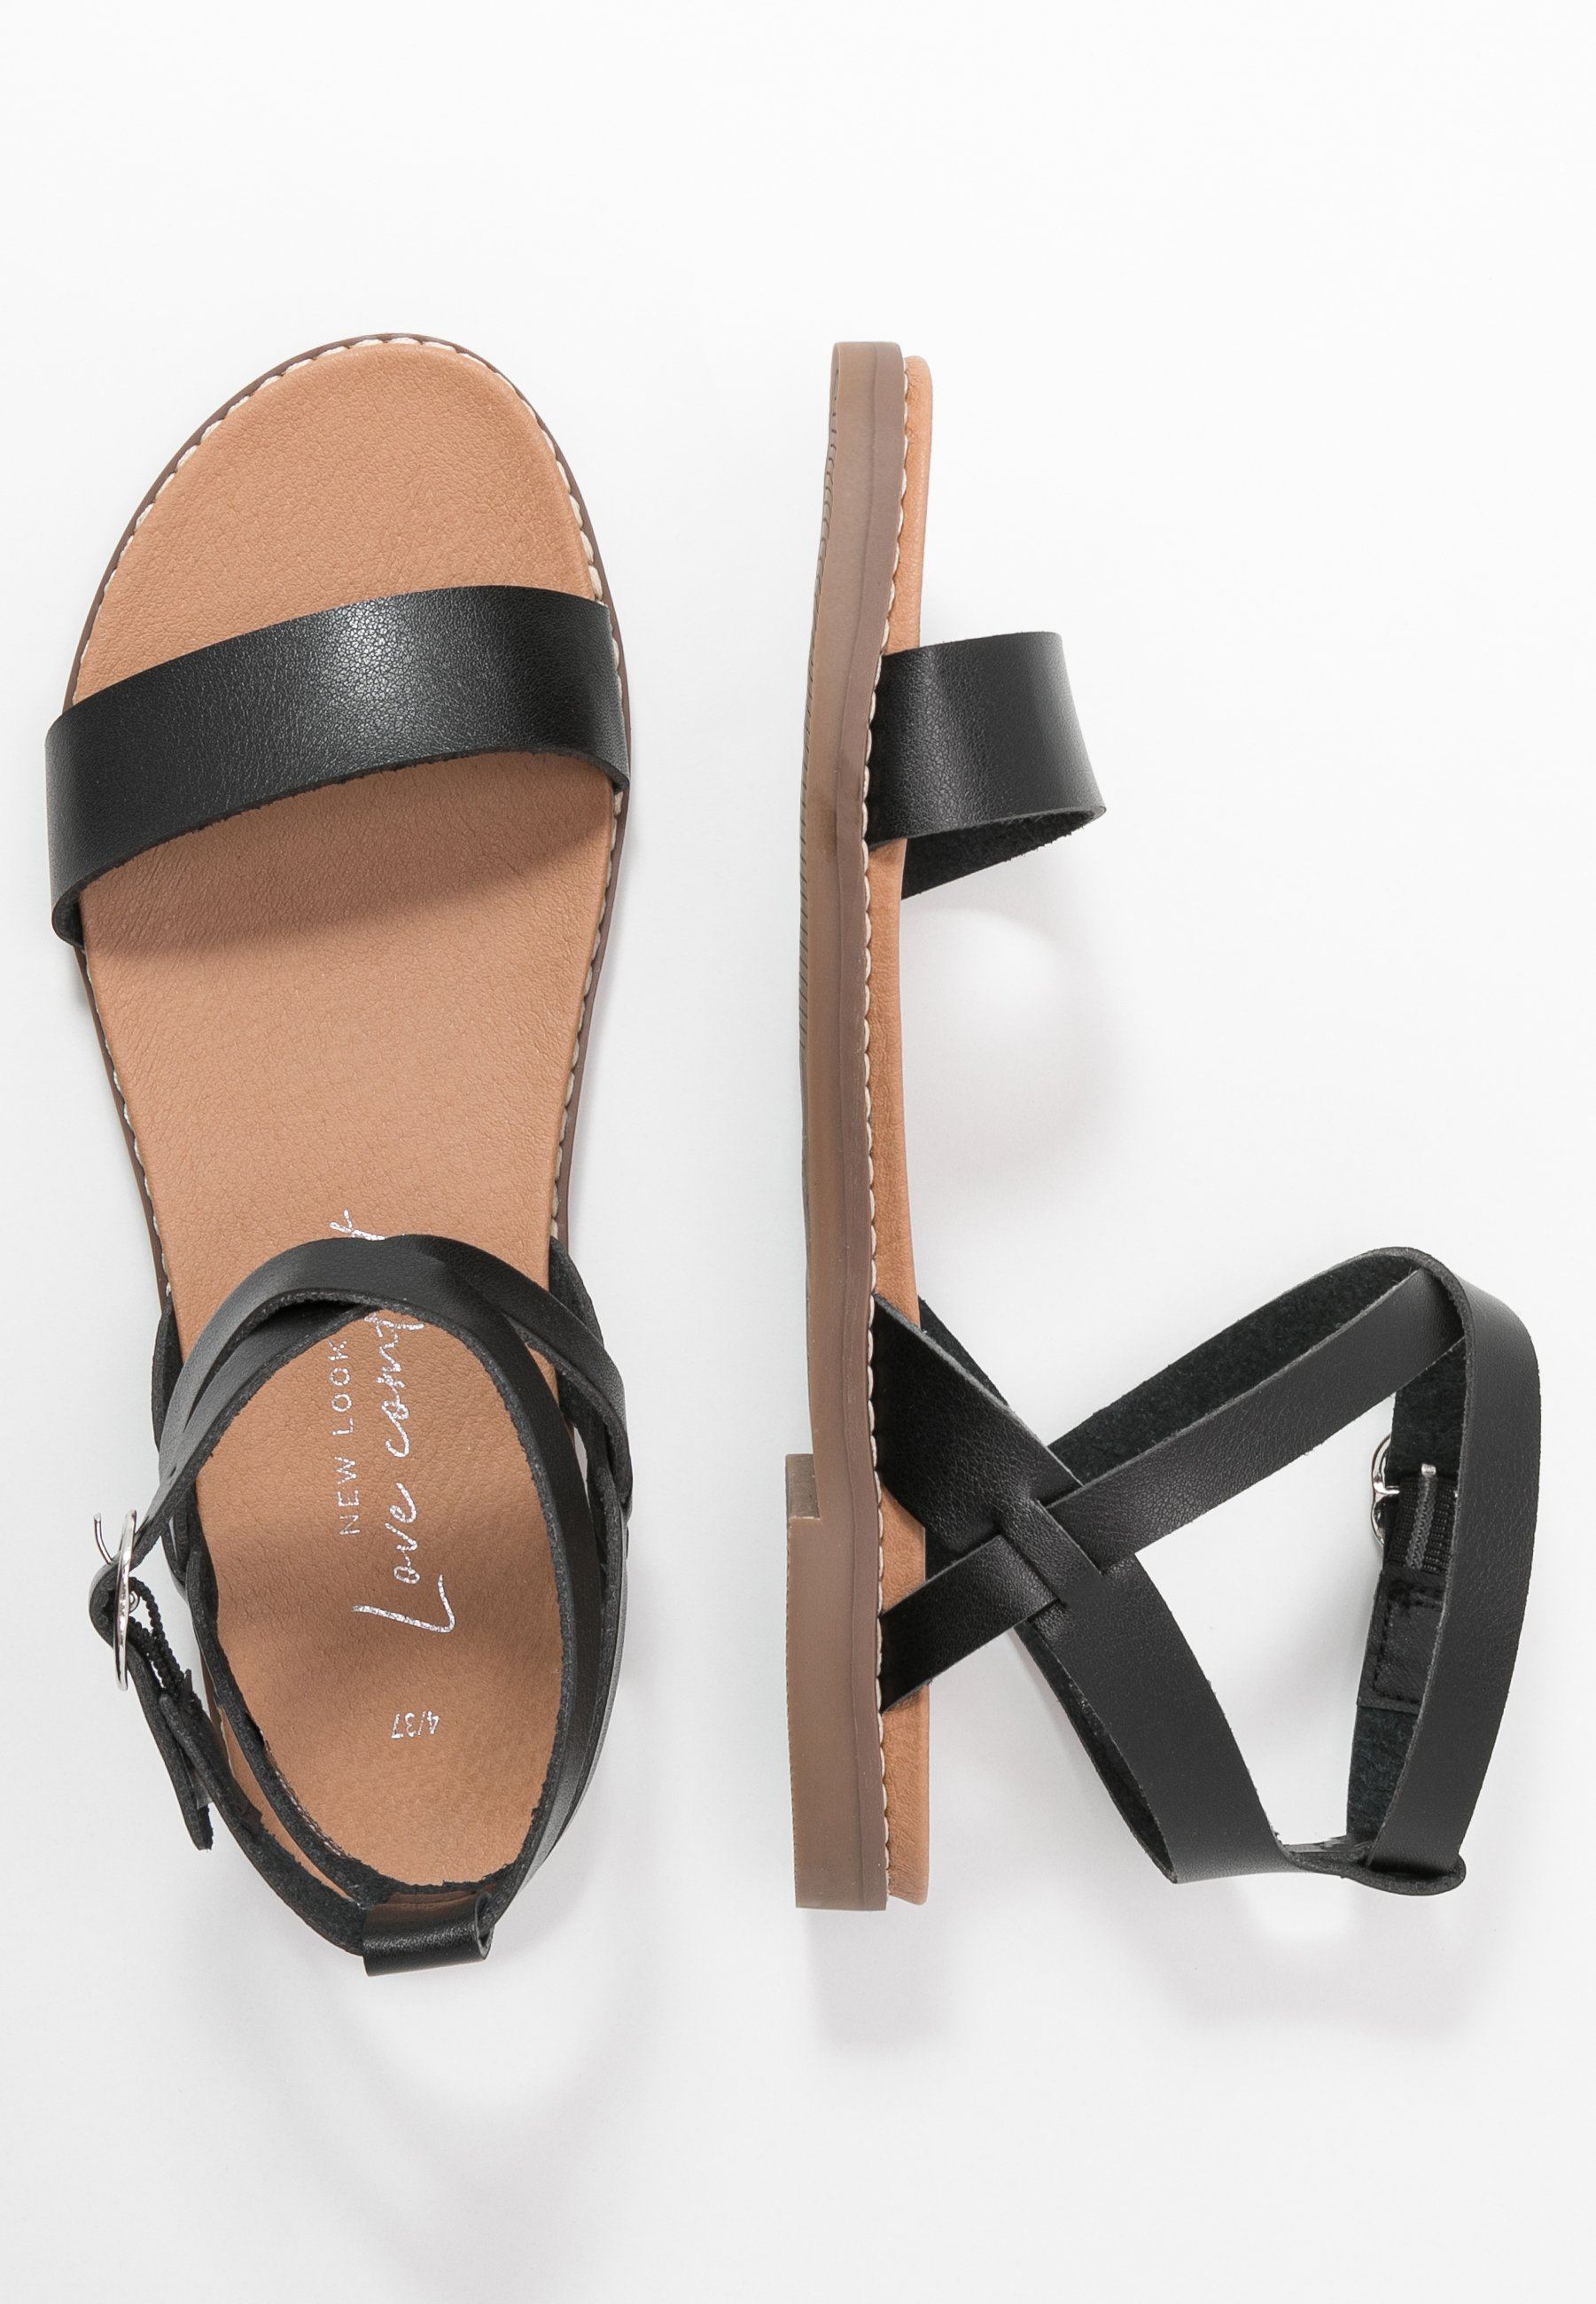 New Look FIFI - Riemensandalette - black DkMPwu